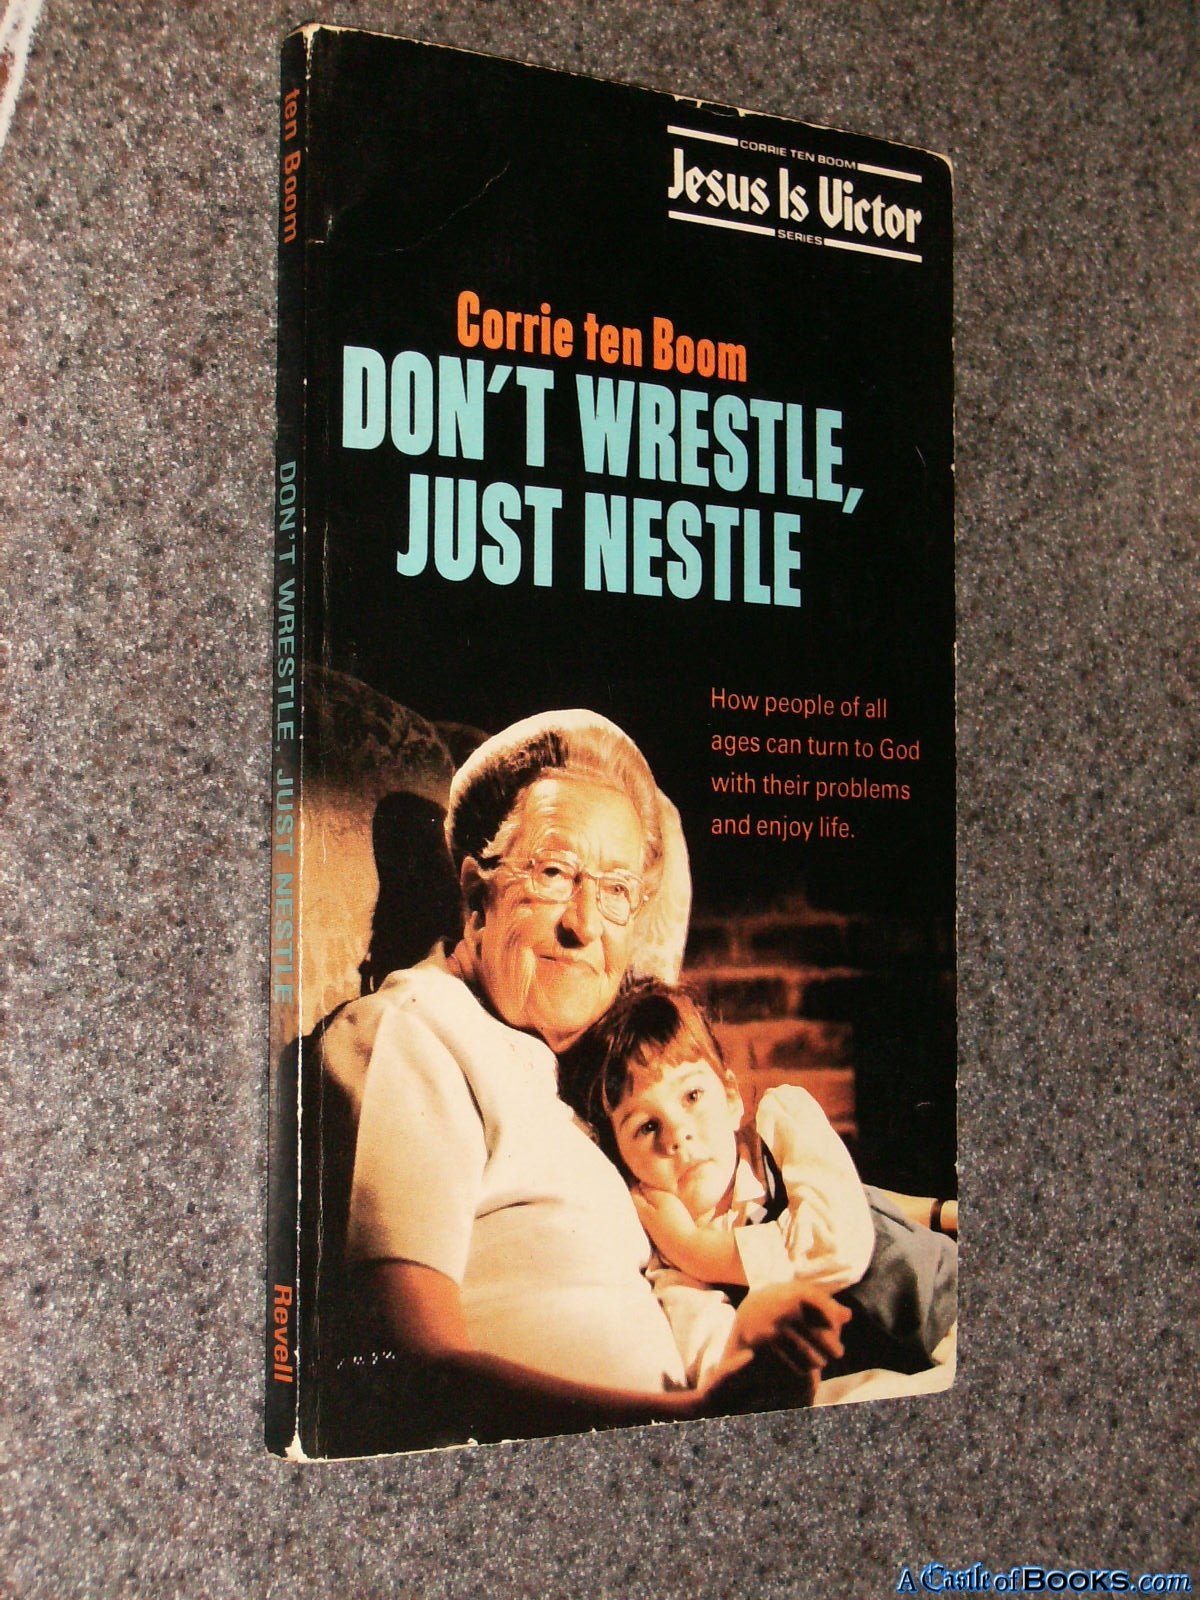 Don t wrestle just nestle corrie ten boom 9780800708481 amazon com books